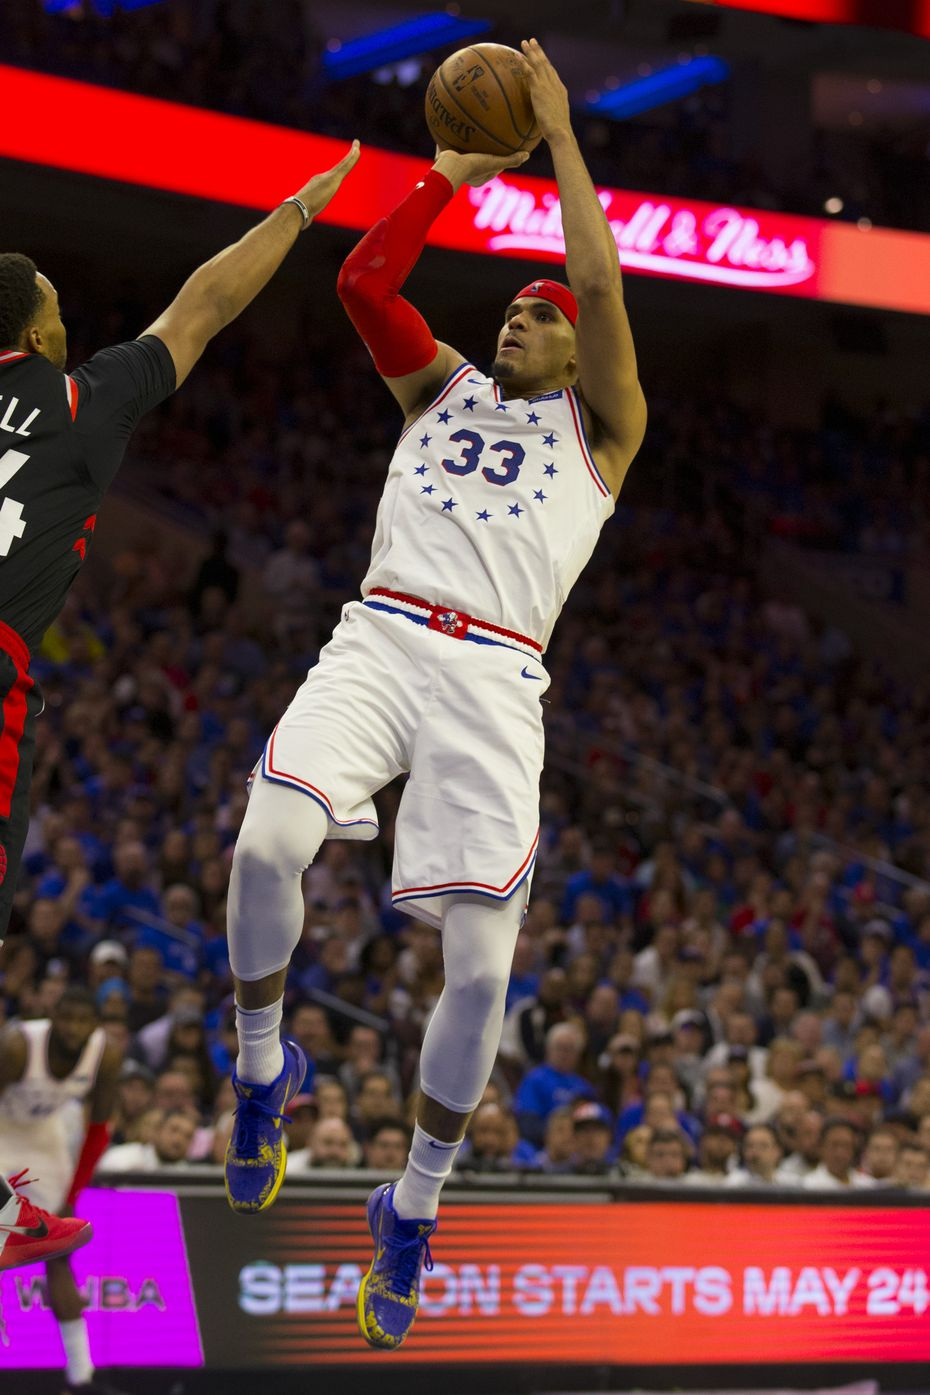 Tobias Harris #33 of the Philadelphia 76ers shoots the ball against the Toronto Raptors in Game Three of the Eastern Conference Semifinals at the Wells Fargo Center on May 2, 2019 in Philadelphia, Pennsylvania. The 76ers defeated the Raptors 116-95.